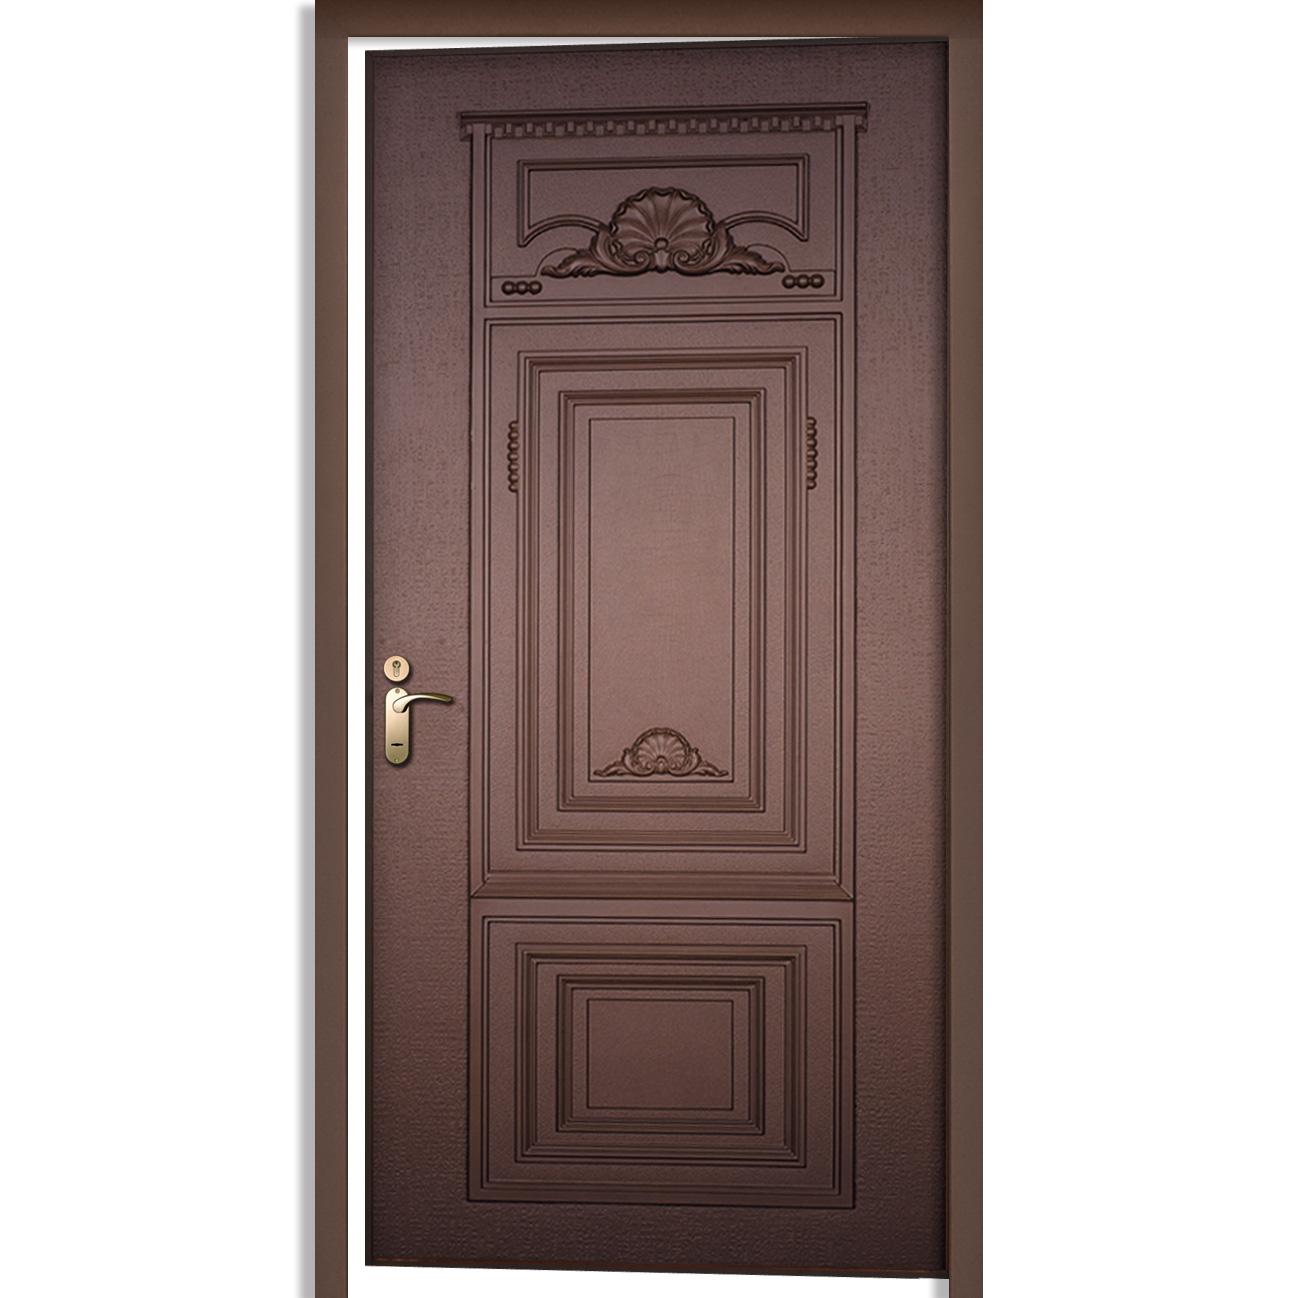 Cast aluminum door single door prolumis for Single main door designs